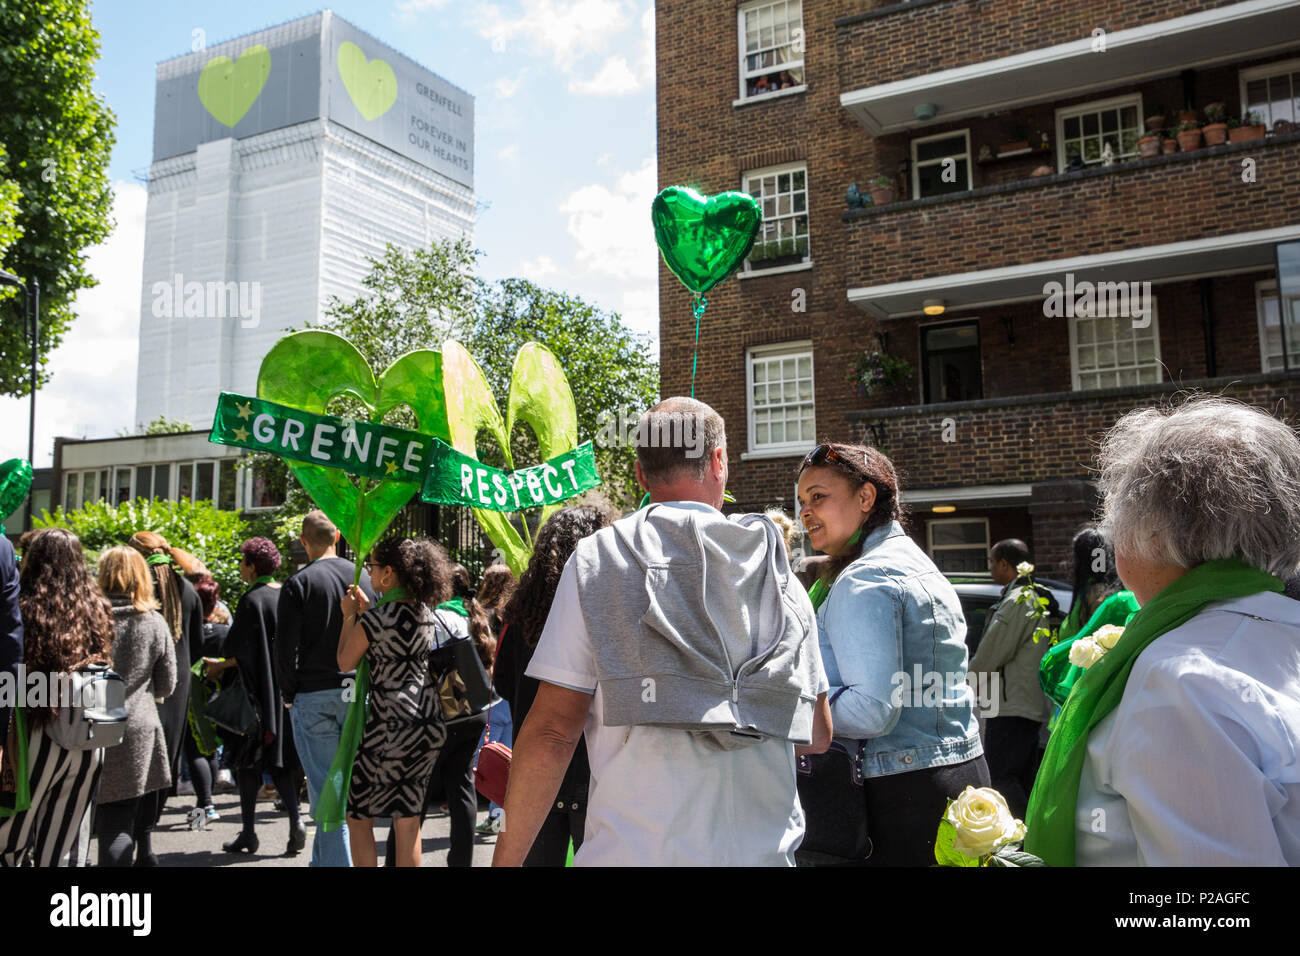 London, UK. 14th June, 2018. Members of the local community, faith leaders, politicians and wellwishers pass the Grenfell Tower, now covered, as they take part in a silent procession from St Helen's Church to the Wall of Truth to mark the first anniversary of the Grenfell Tower Fire. Credit: Mark Kerrison/Alamy Live News - Stock Image